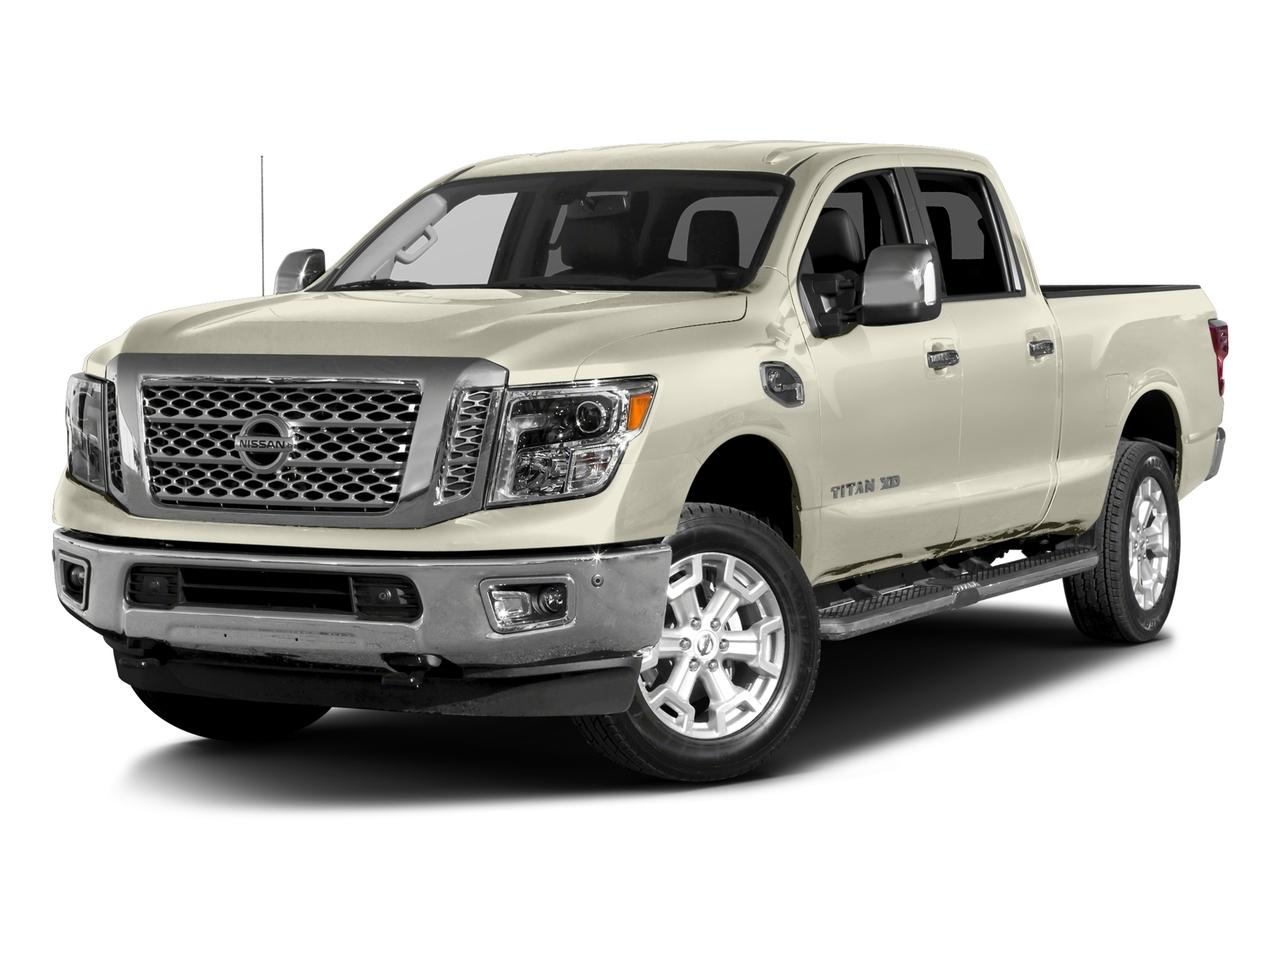 2016 Nissan Titan XD Vehicle Photo in Colorado Springs, CO 80920